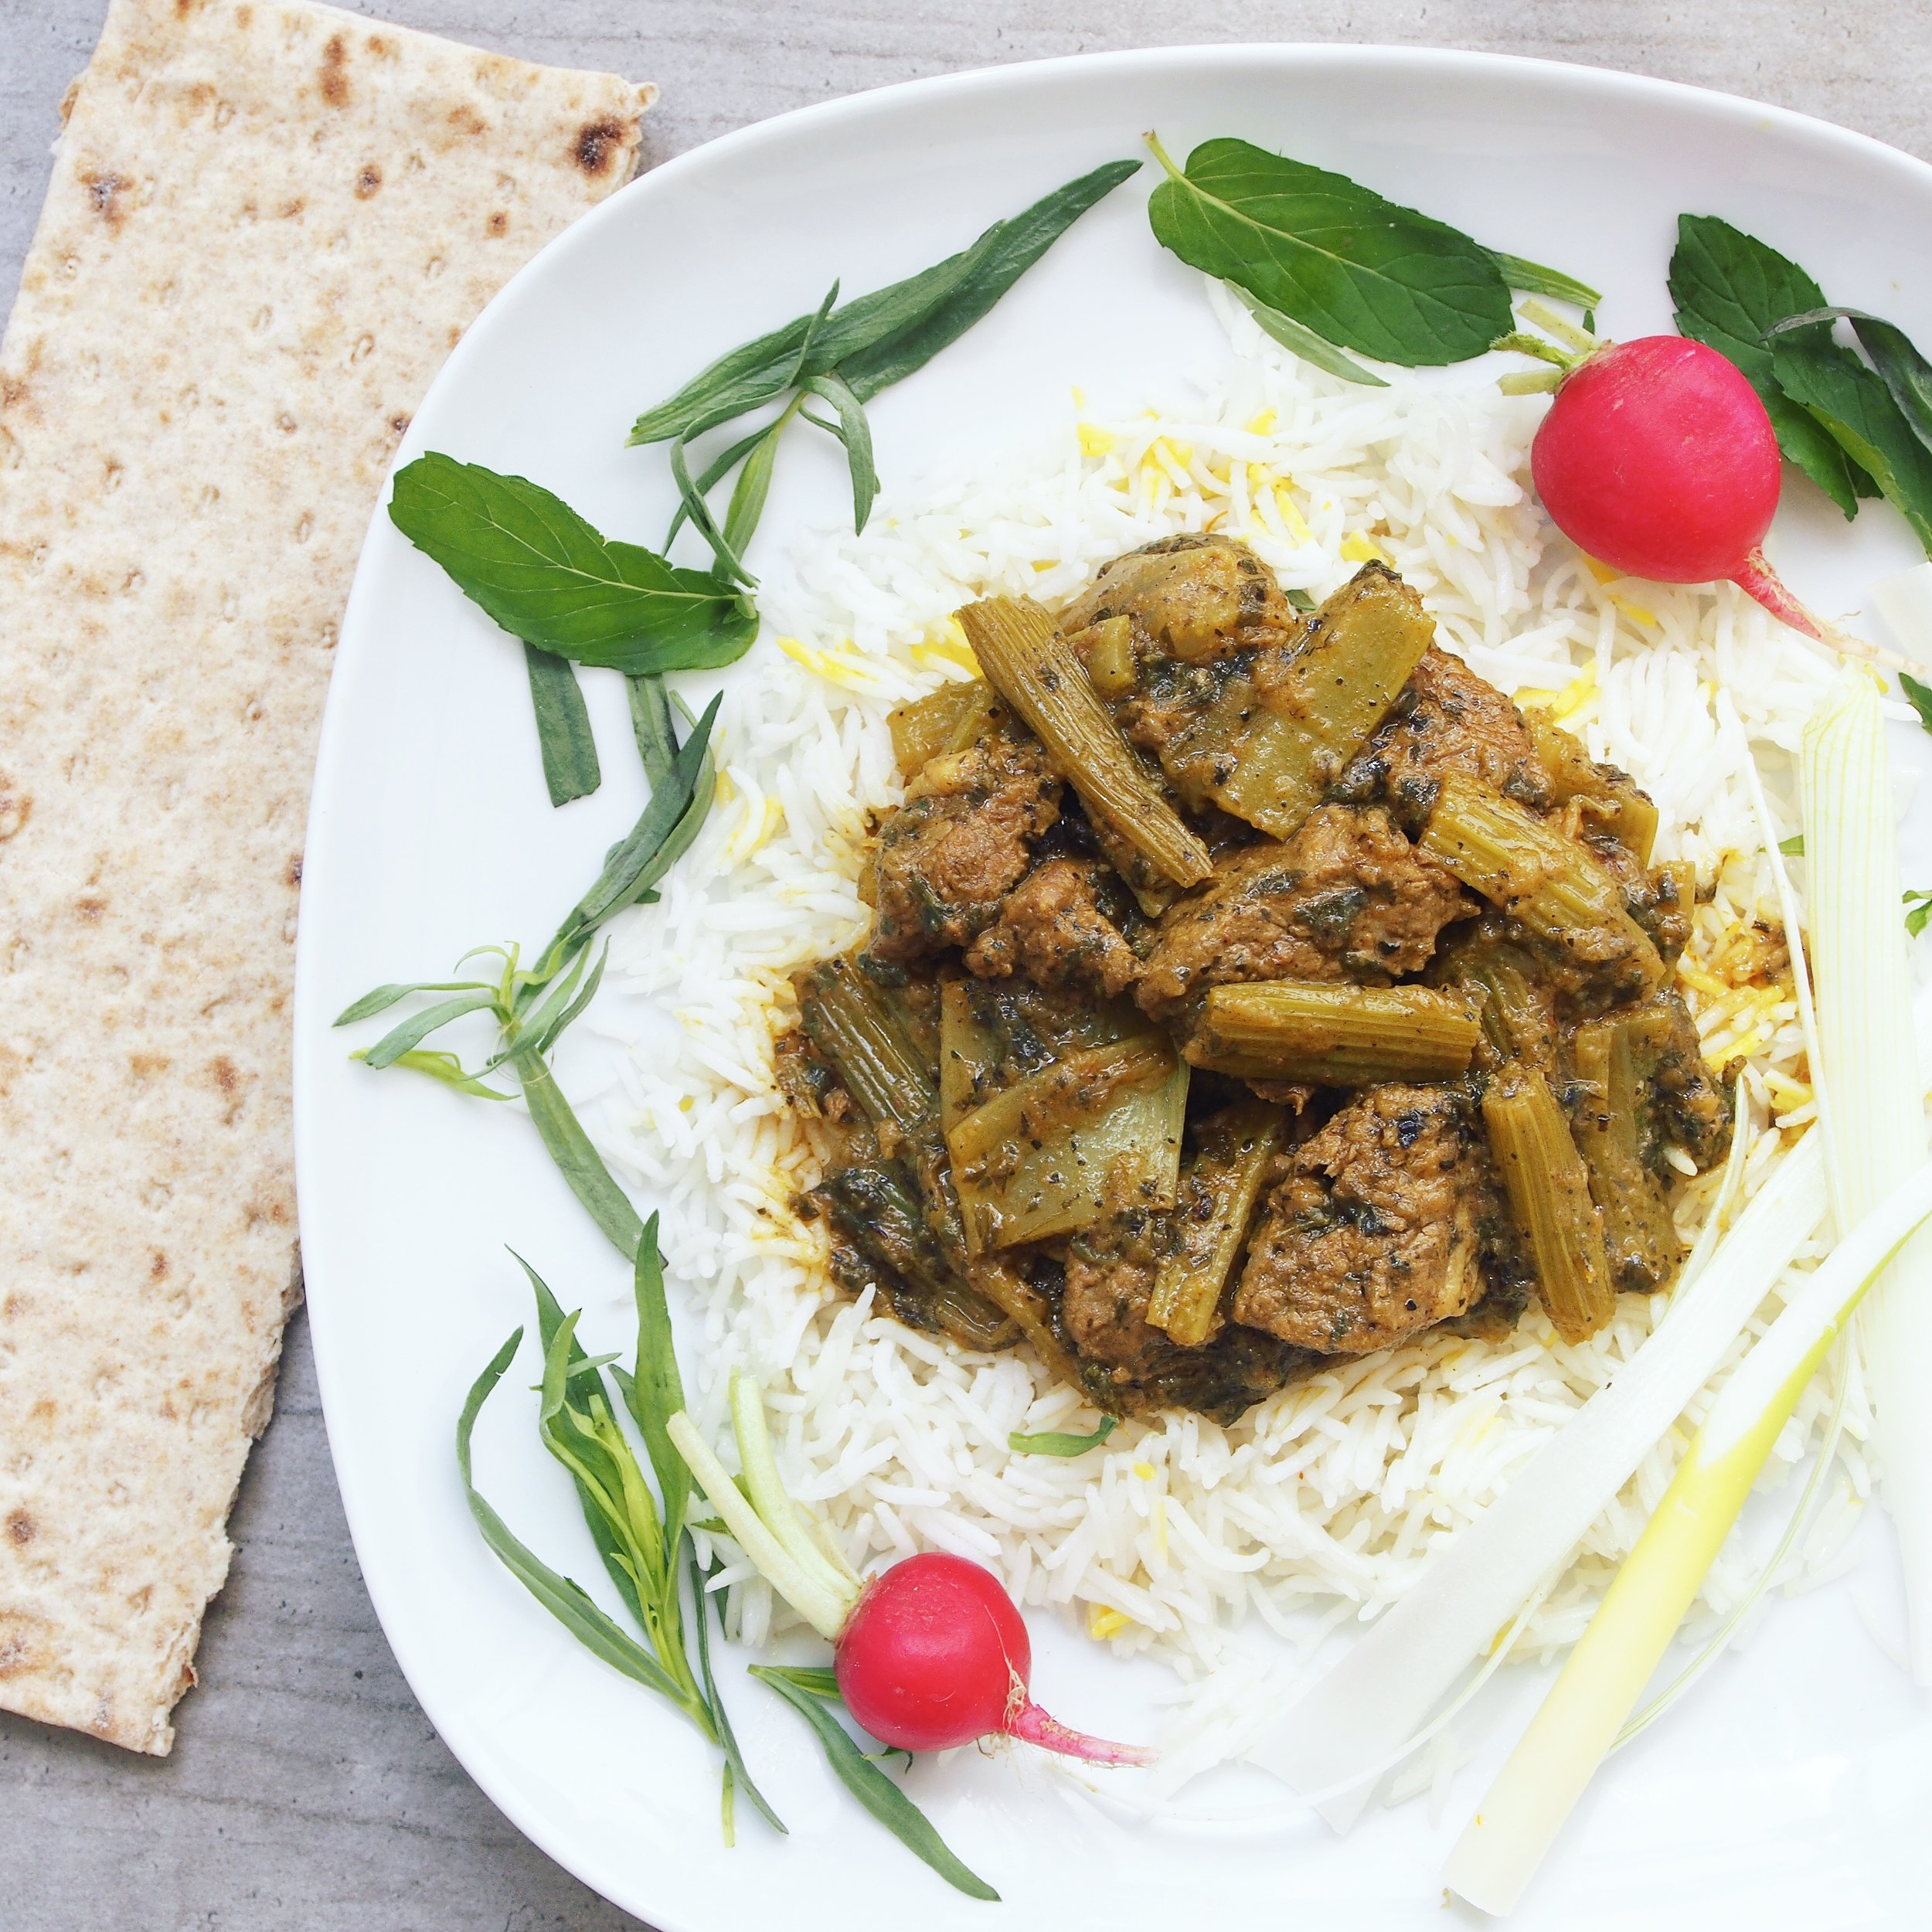 Khorest-e Karafs is a Persian Lamb and Celery Stew. It's a traditional Persian recipe.